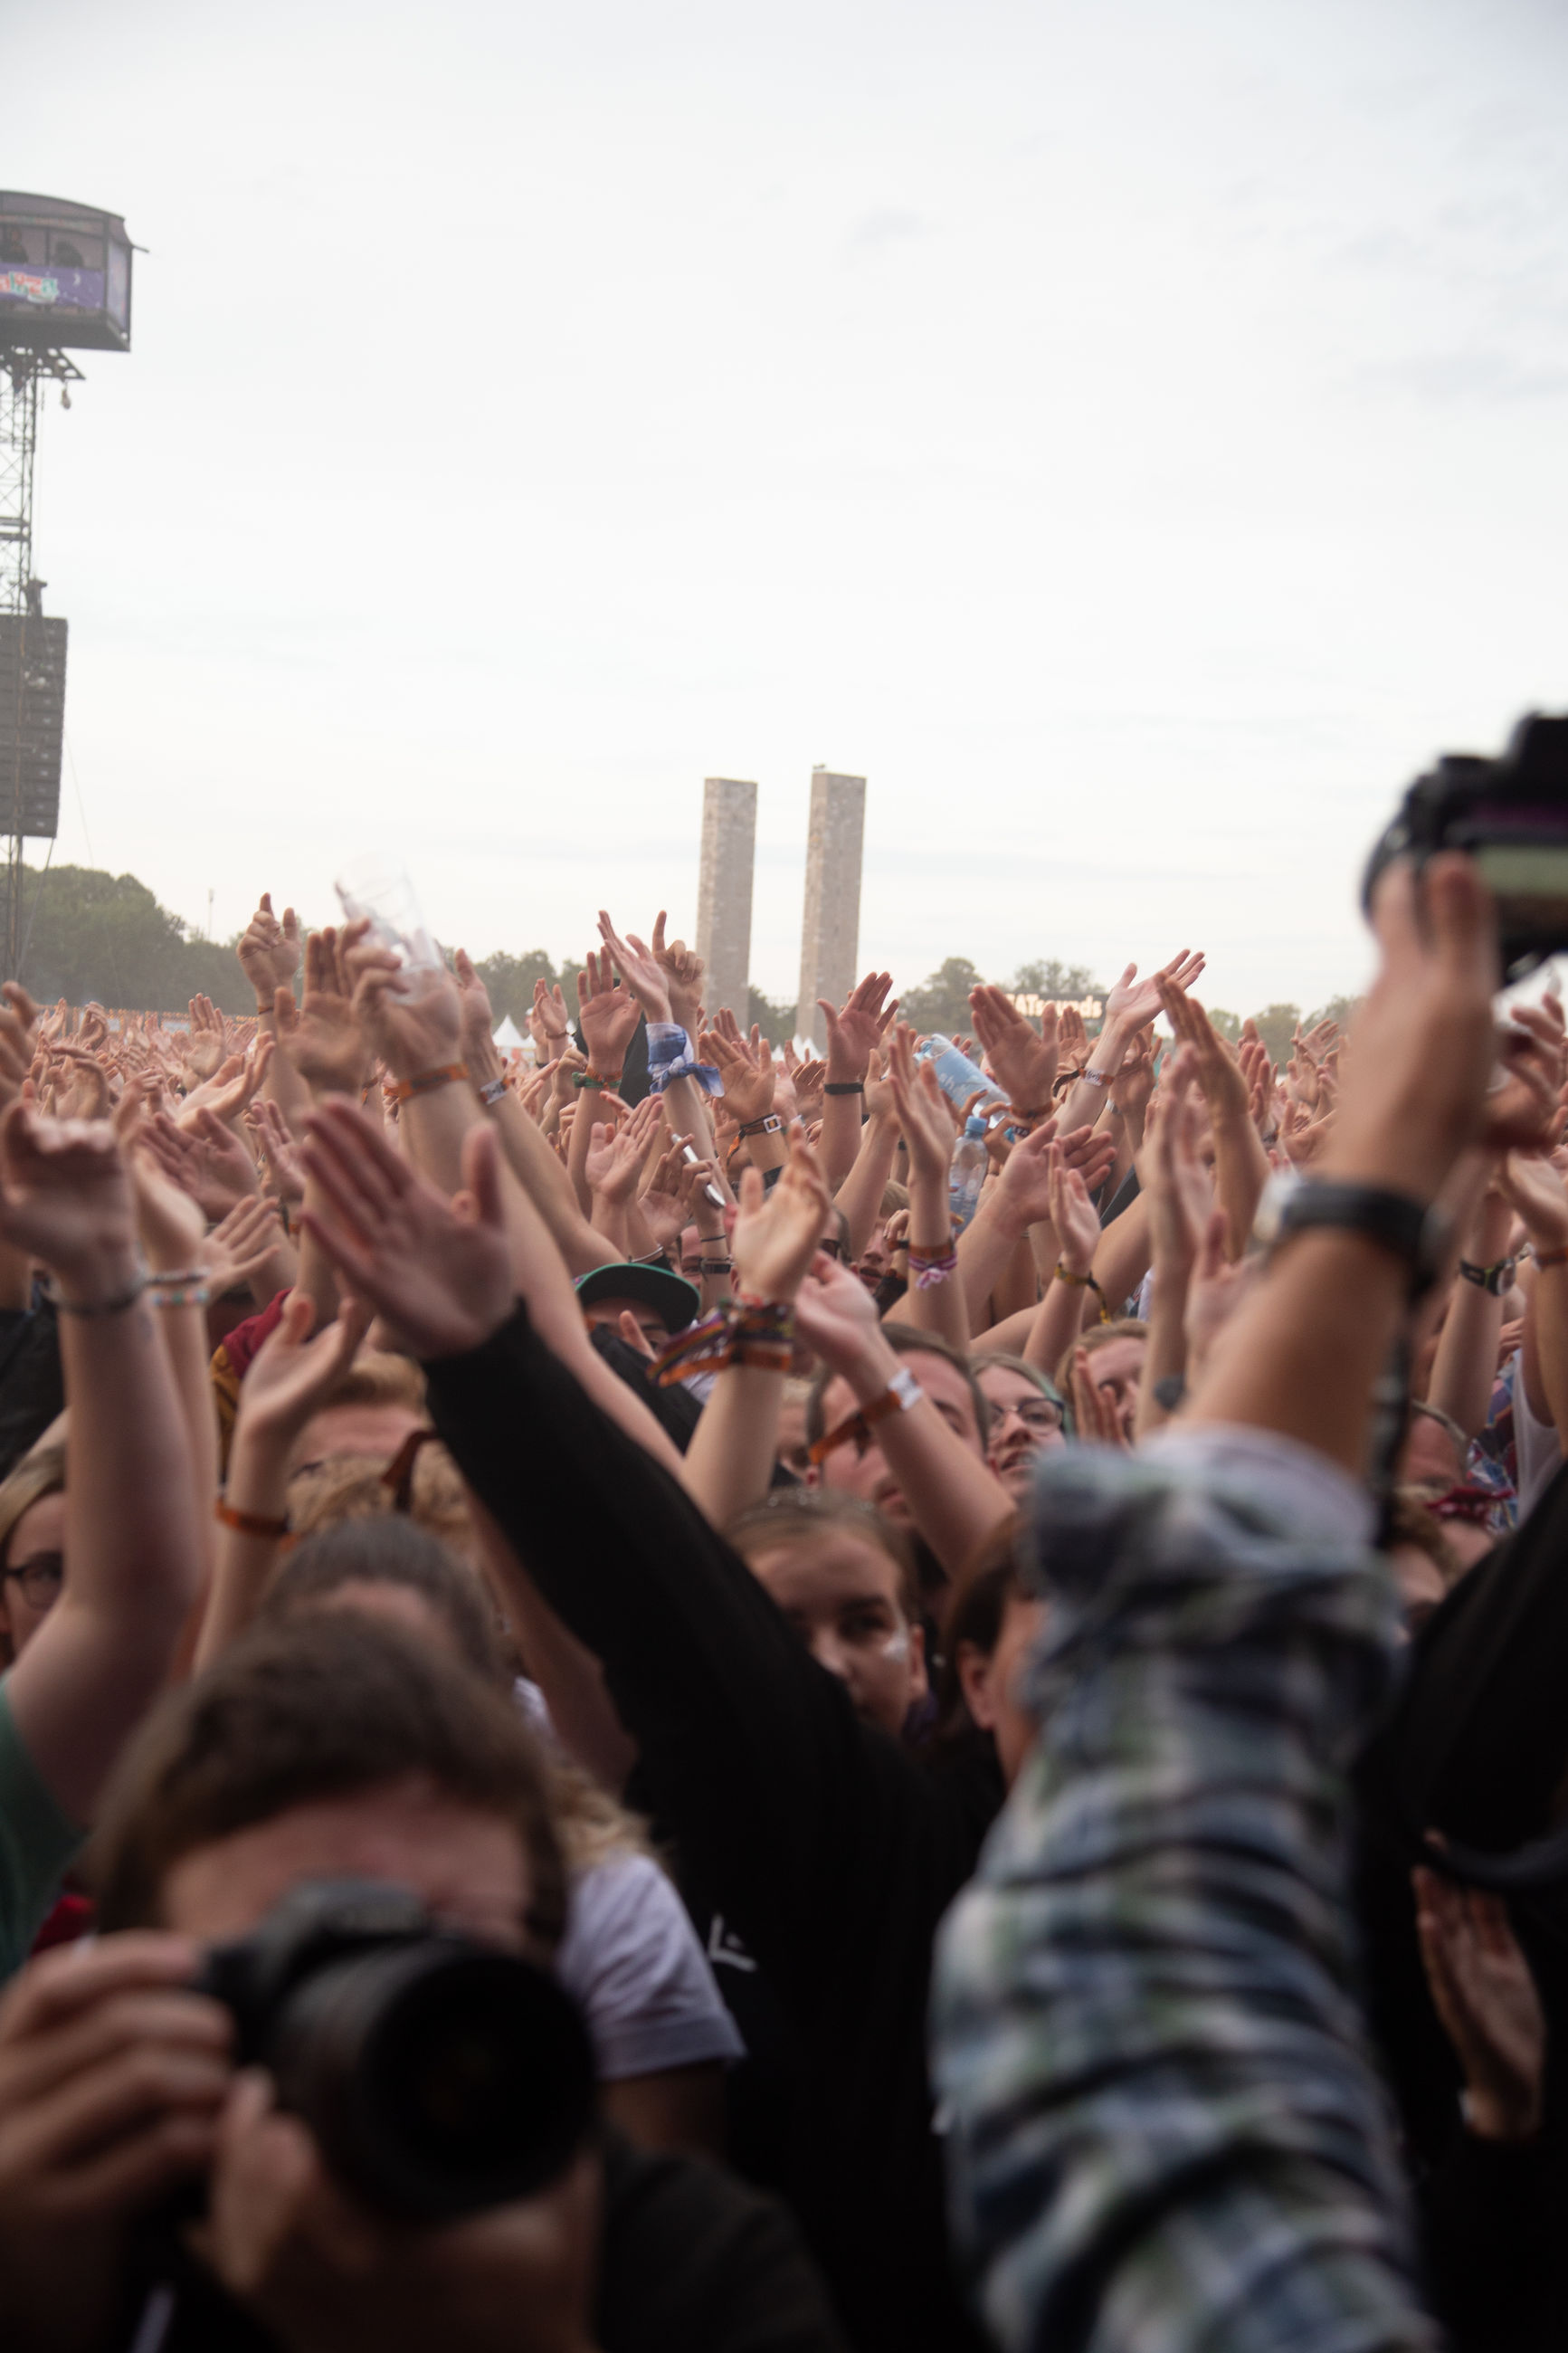 crowd, group of people, large group of people, real people, enjoyment, event, sky, women, human arm, music, arms raised, men, lifestyles, togetherness, hand, selective focus, youth culture, arts culture and entertainment, festival, excitement, music festival, outdoors, positive emotion, popular music concert, concert